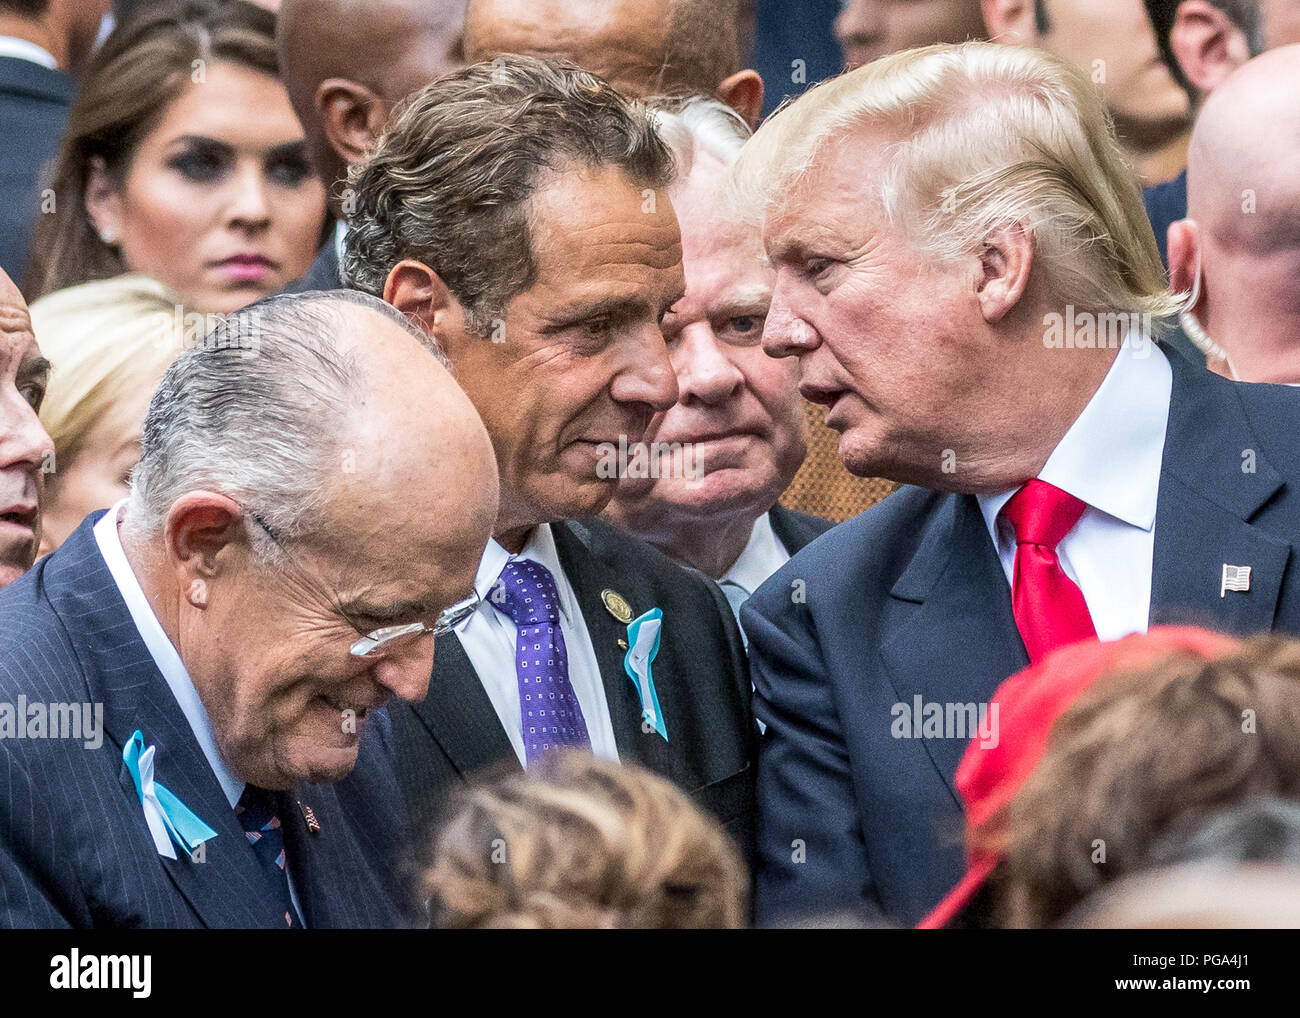 New York, USA, 11 September 2016. US President Donald Trump (candidate at the time)  talks to New York governor Andrew Cuomo next to former NY Major a - Stock Image